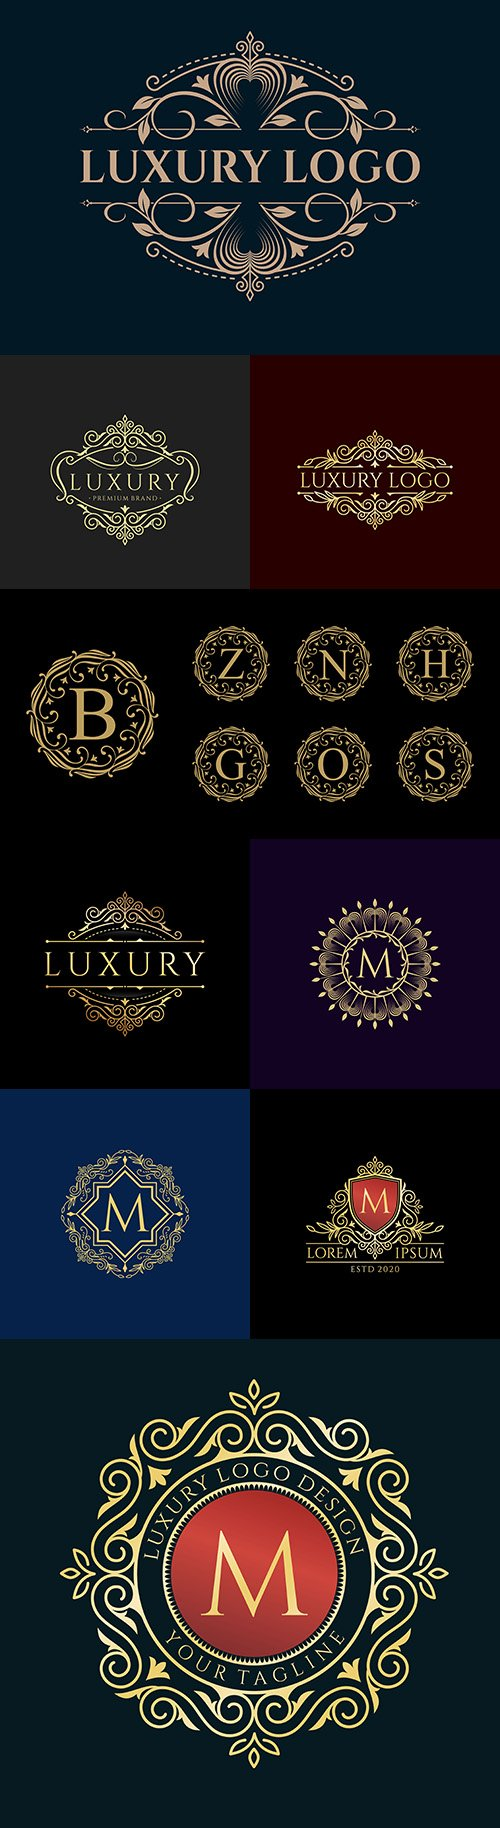 Letter and vintage luxurious logo collection design